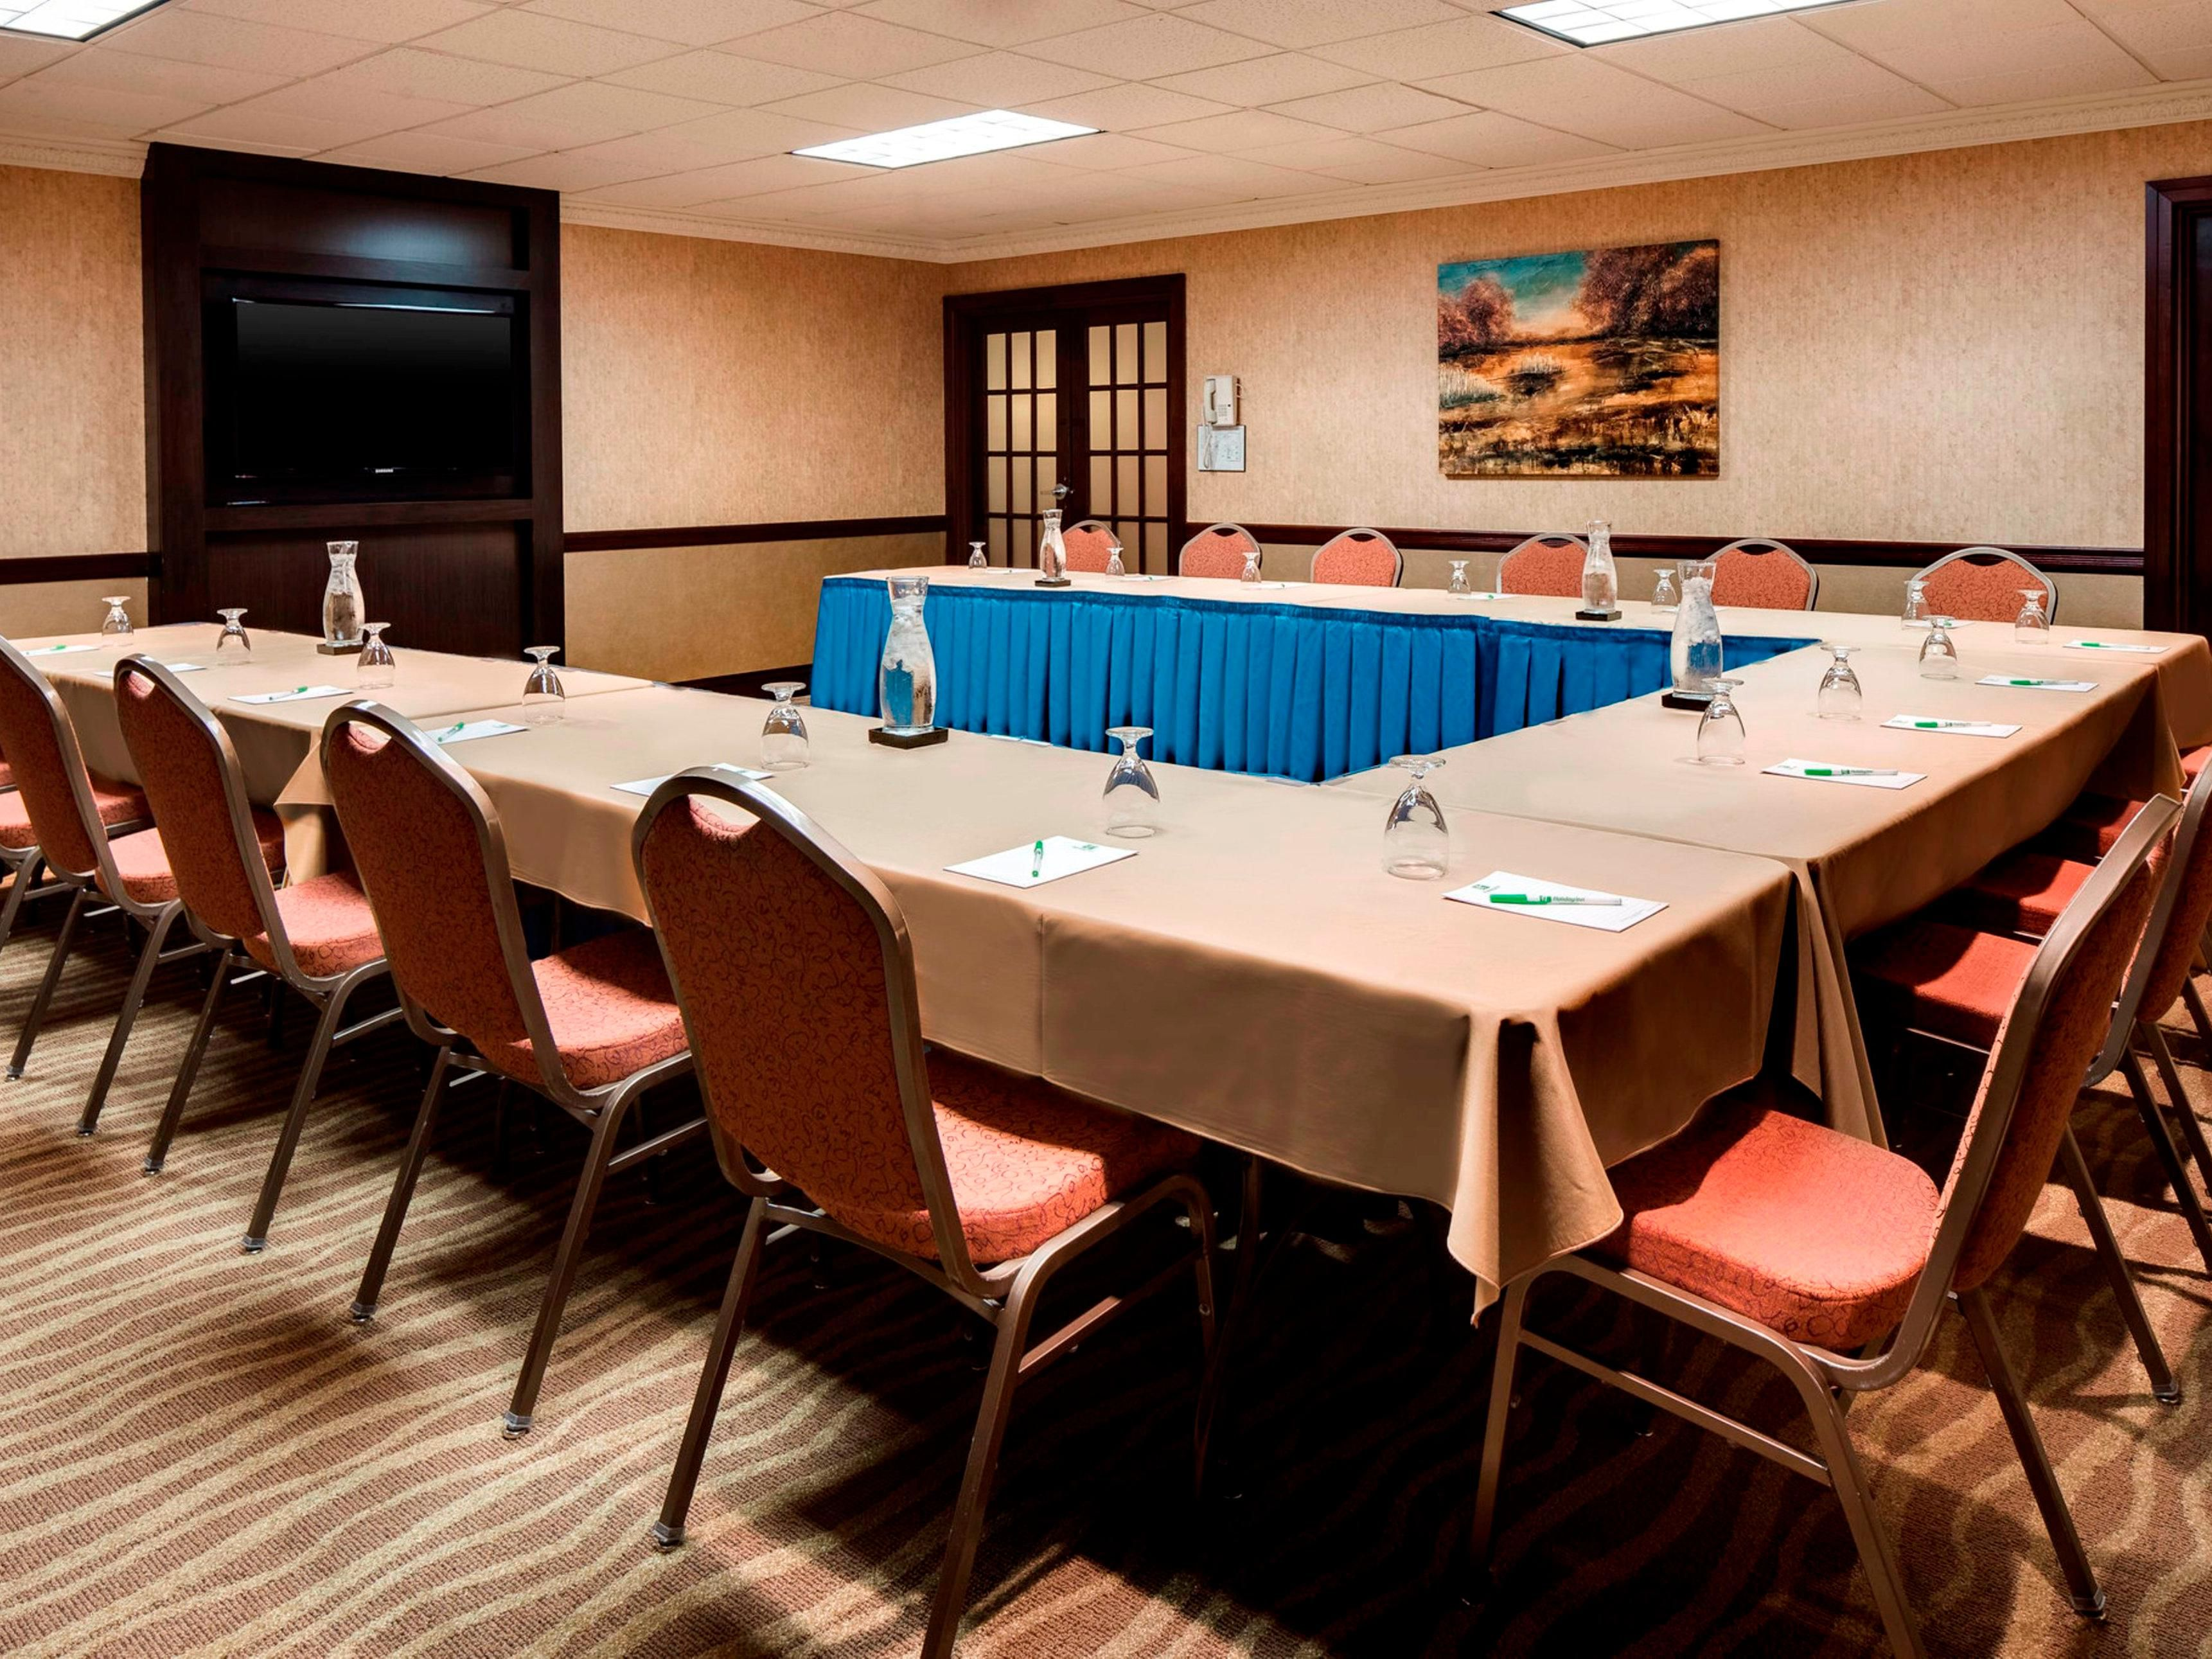 Our meeting rooms offer flexible seating arrangements